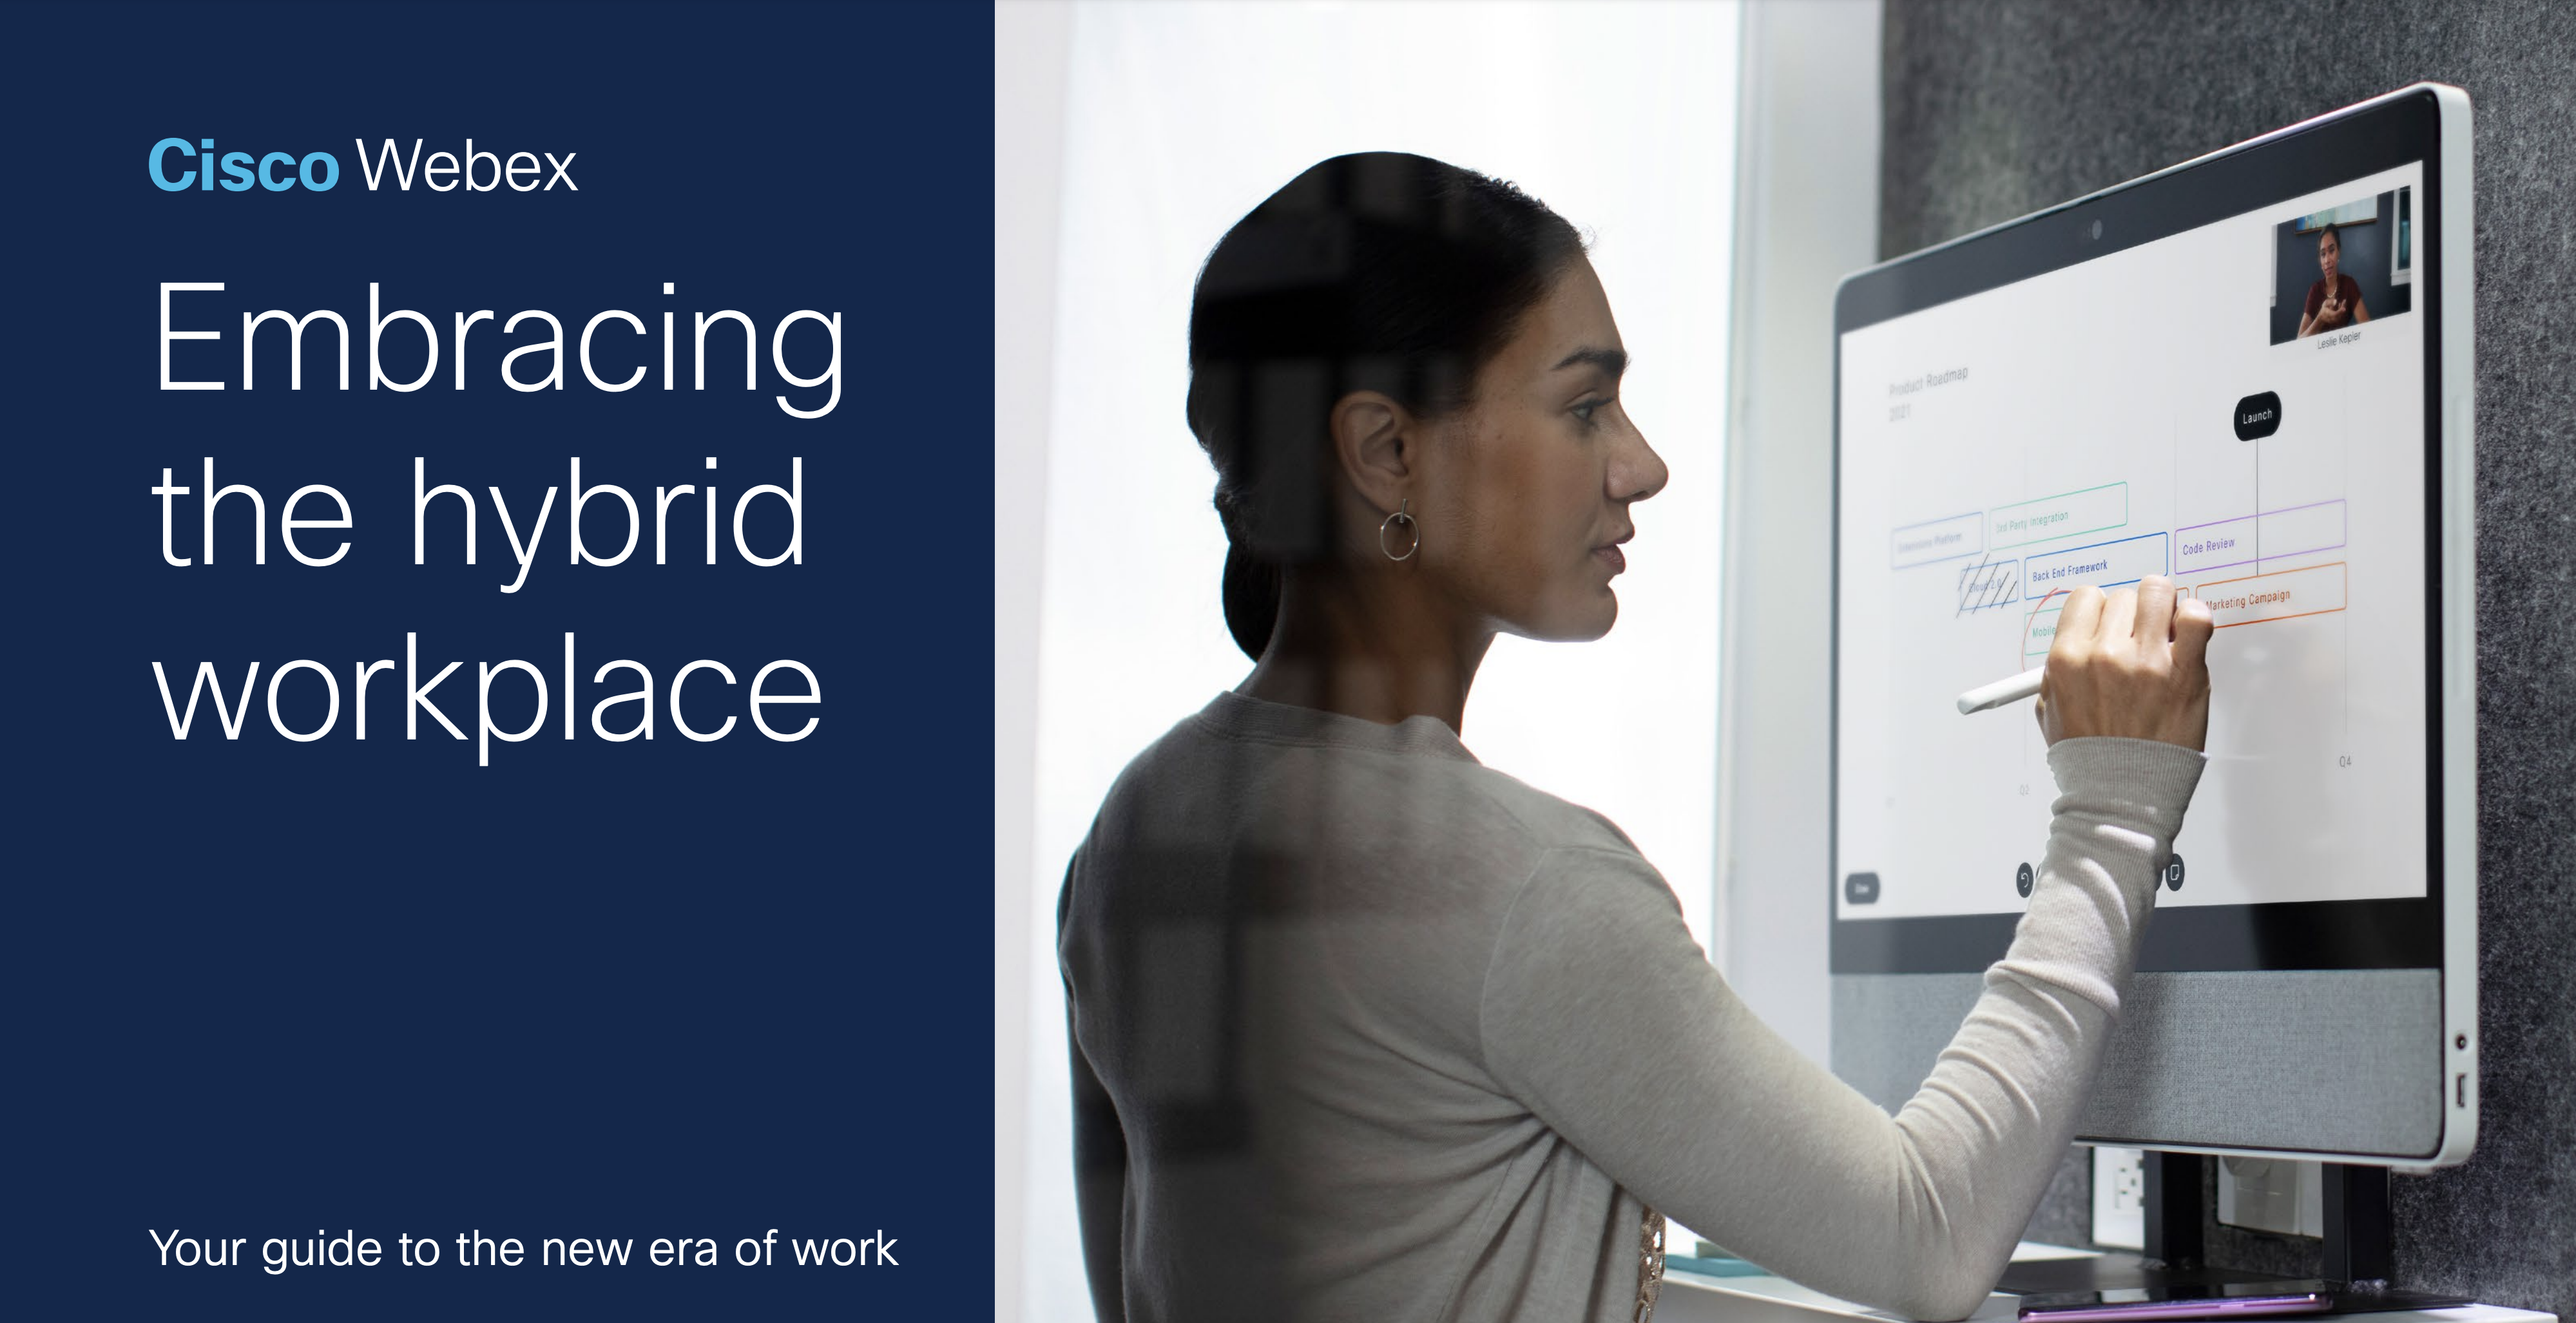 Embracing the Hybrid Workplace Cisco eBook Cover